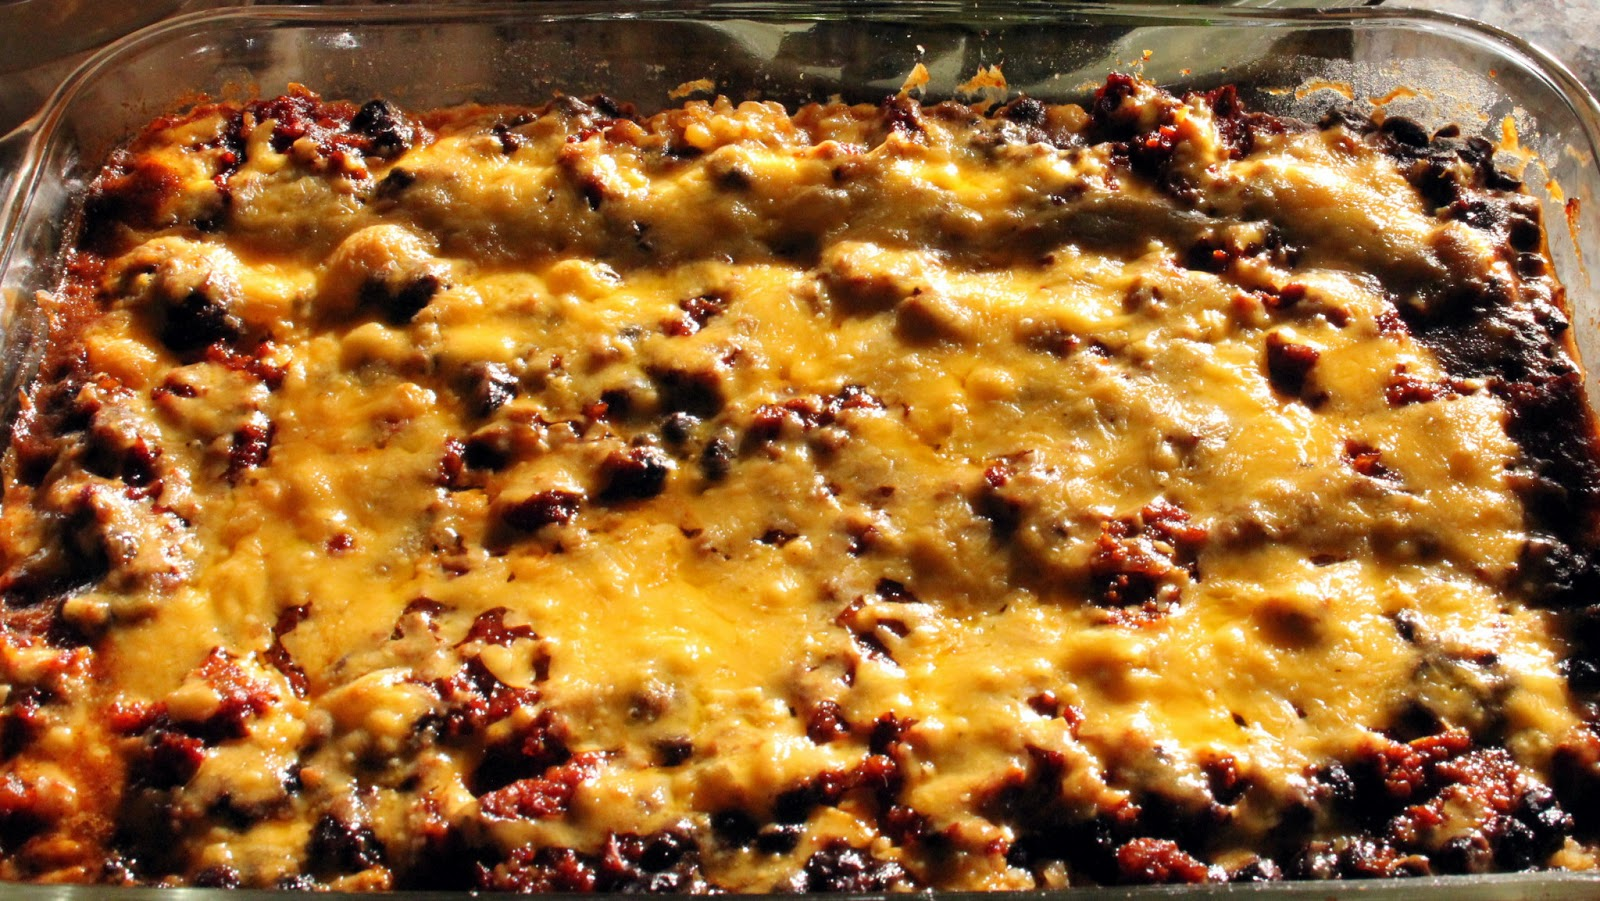 Grain Crazy: Enchilada Casserole with Black Beans and Brown Rice